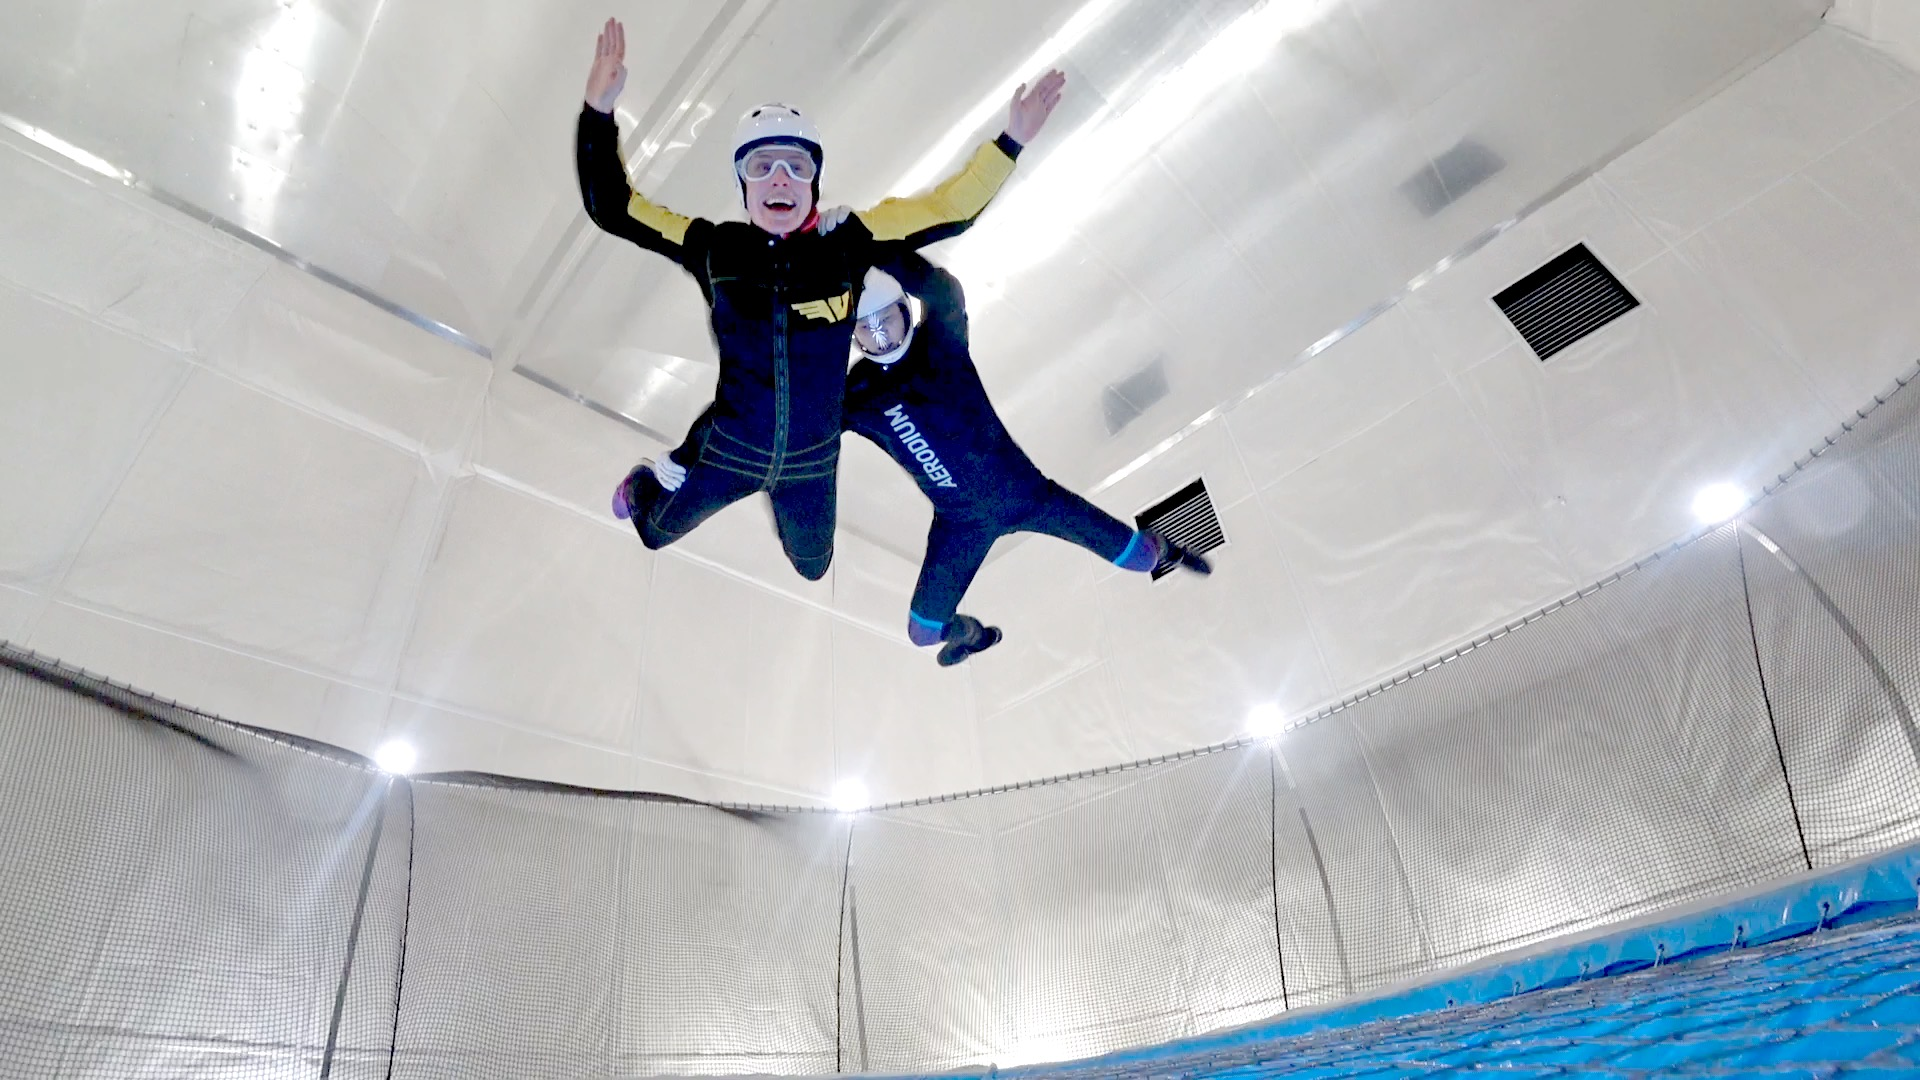 48 hours in Belfast Indoor Skydiving